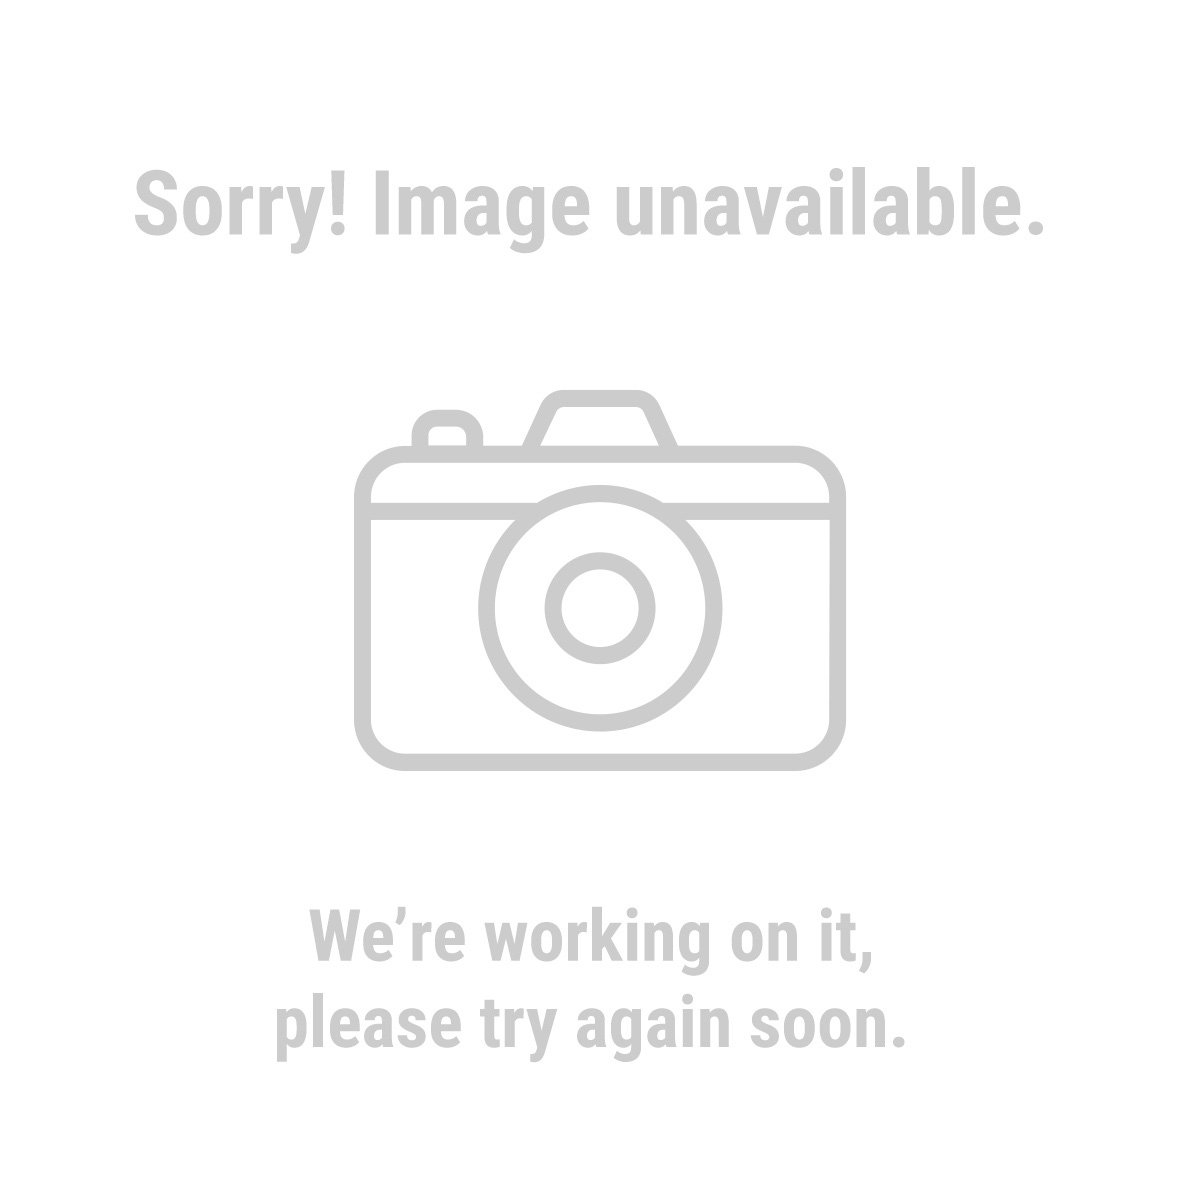 Haul-Master 96455 Power In, Power Out 3000 Lb. Capacity 12 Volt Electric Winch